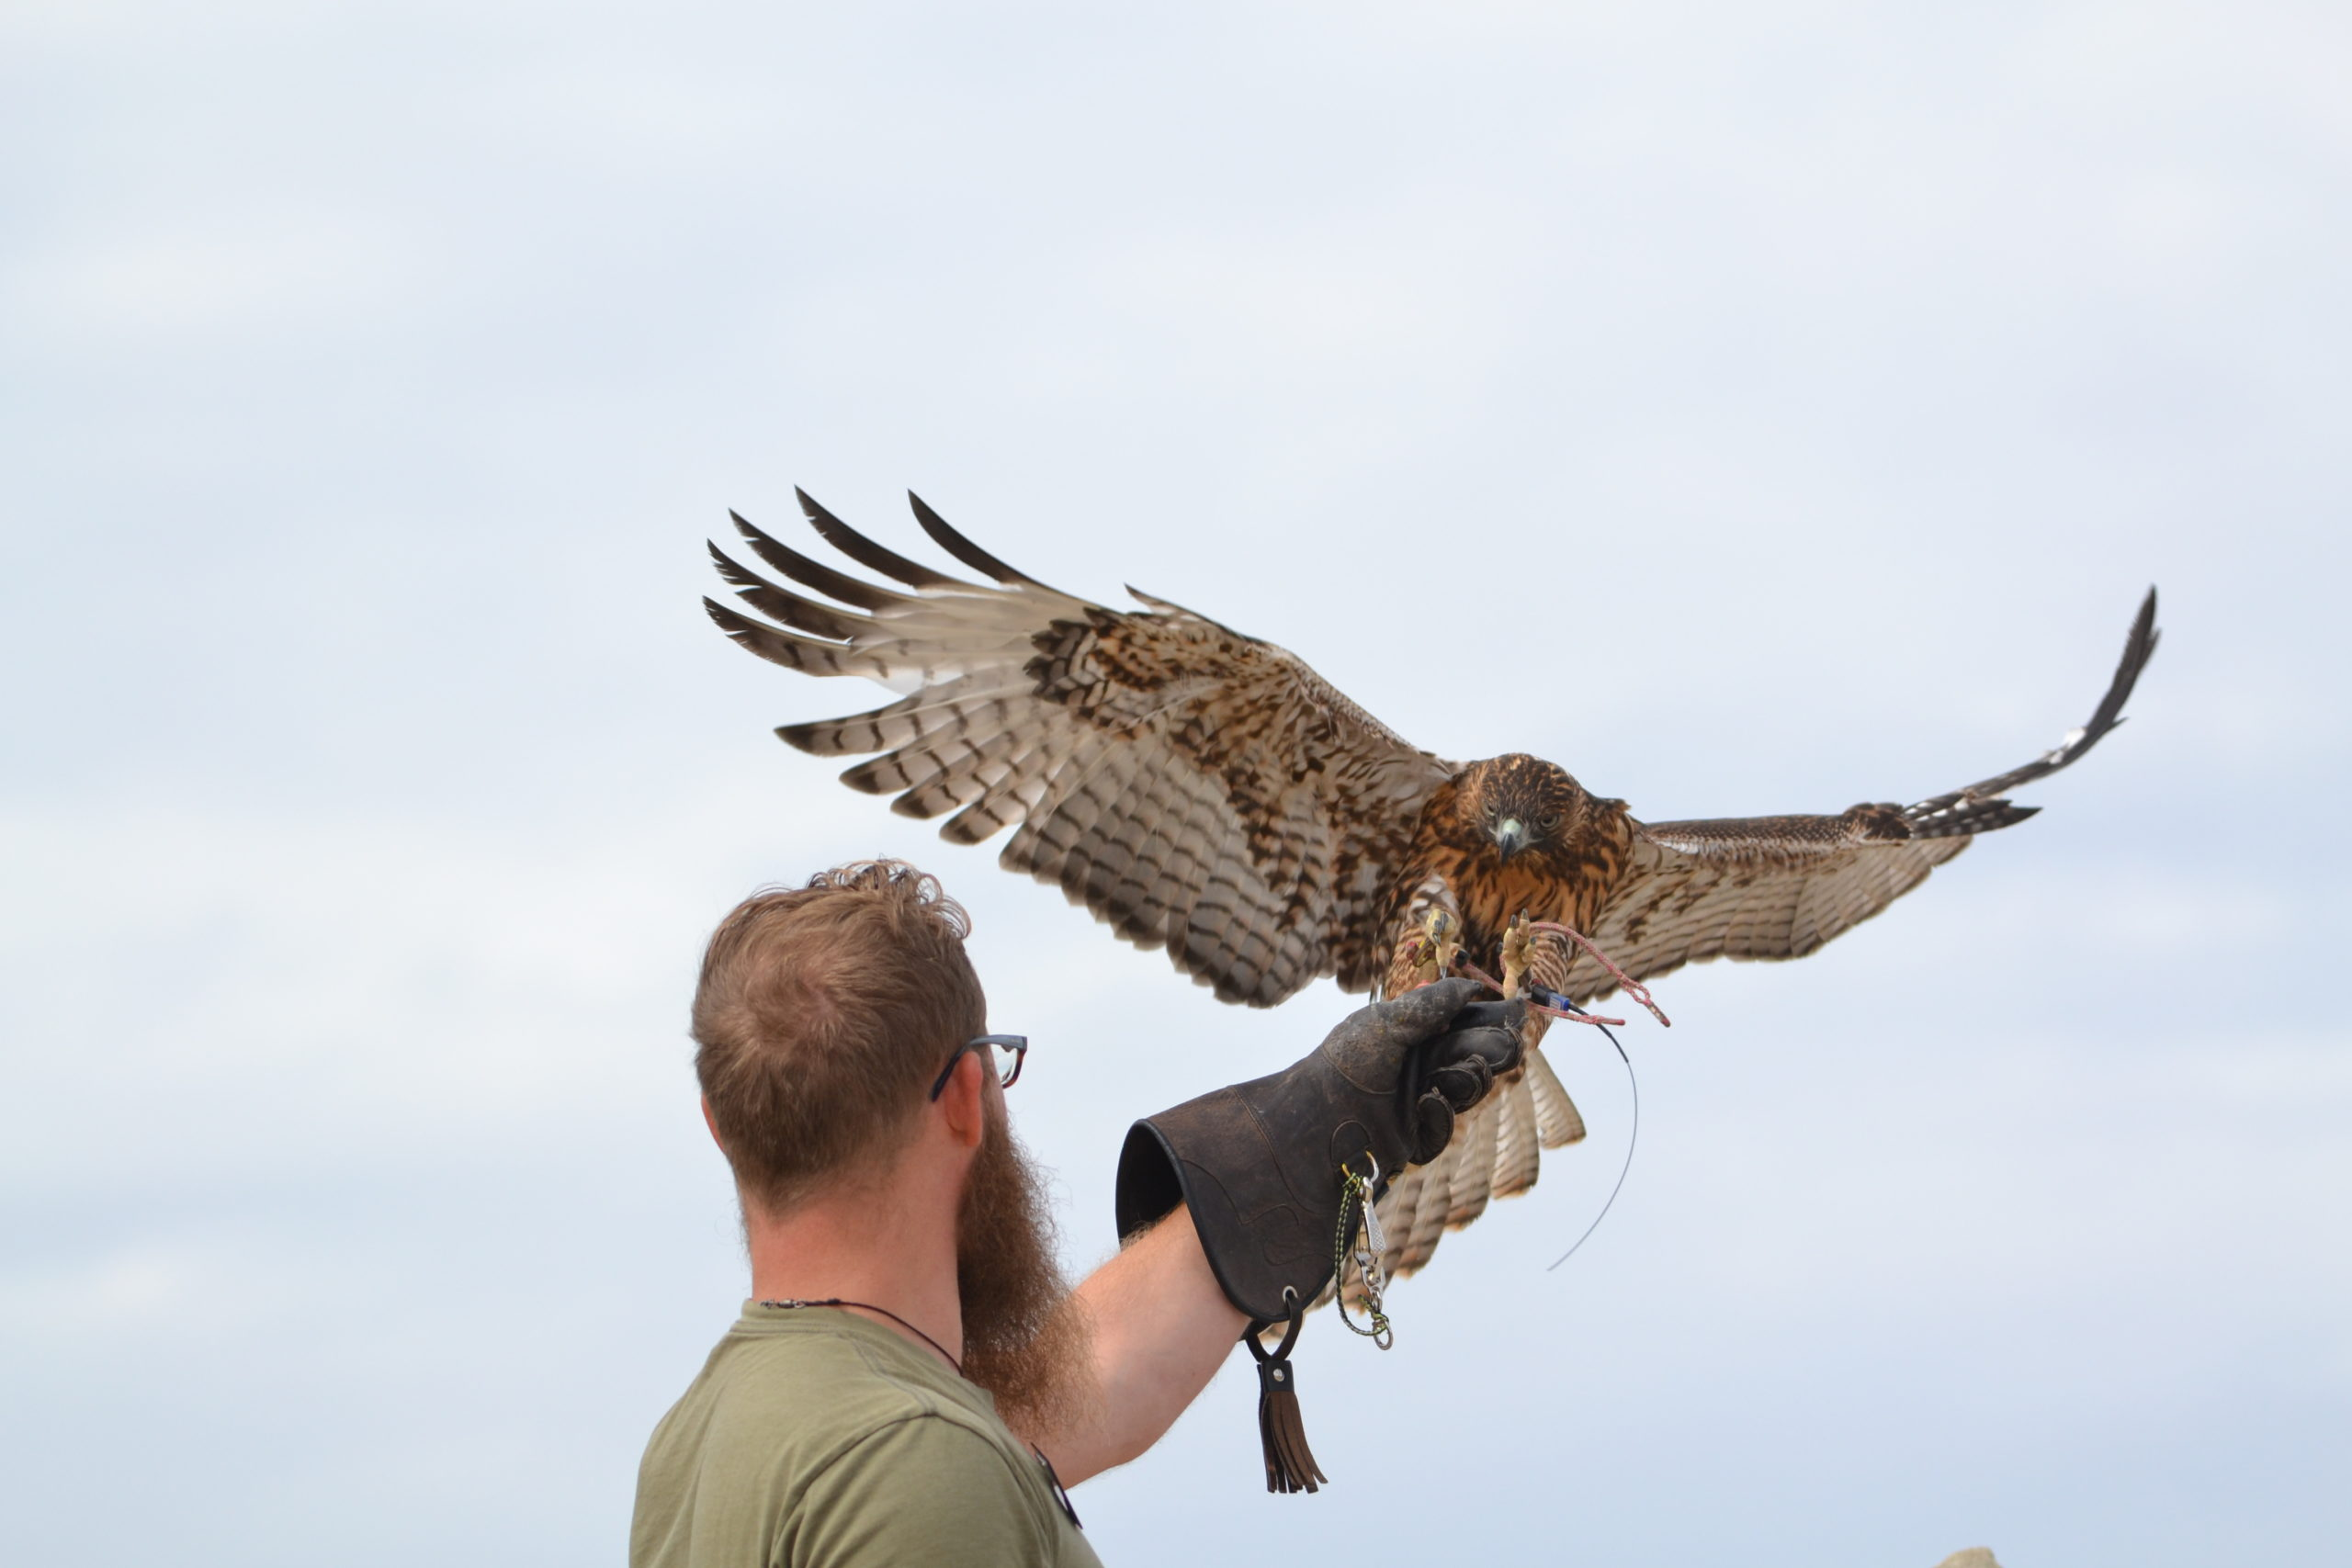 World Center Birds of Prey is one of many fun things to do in Boise.